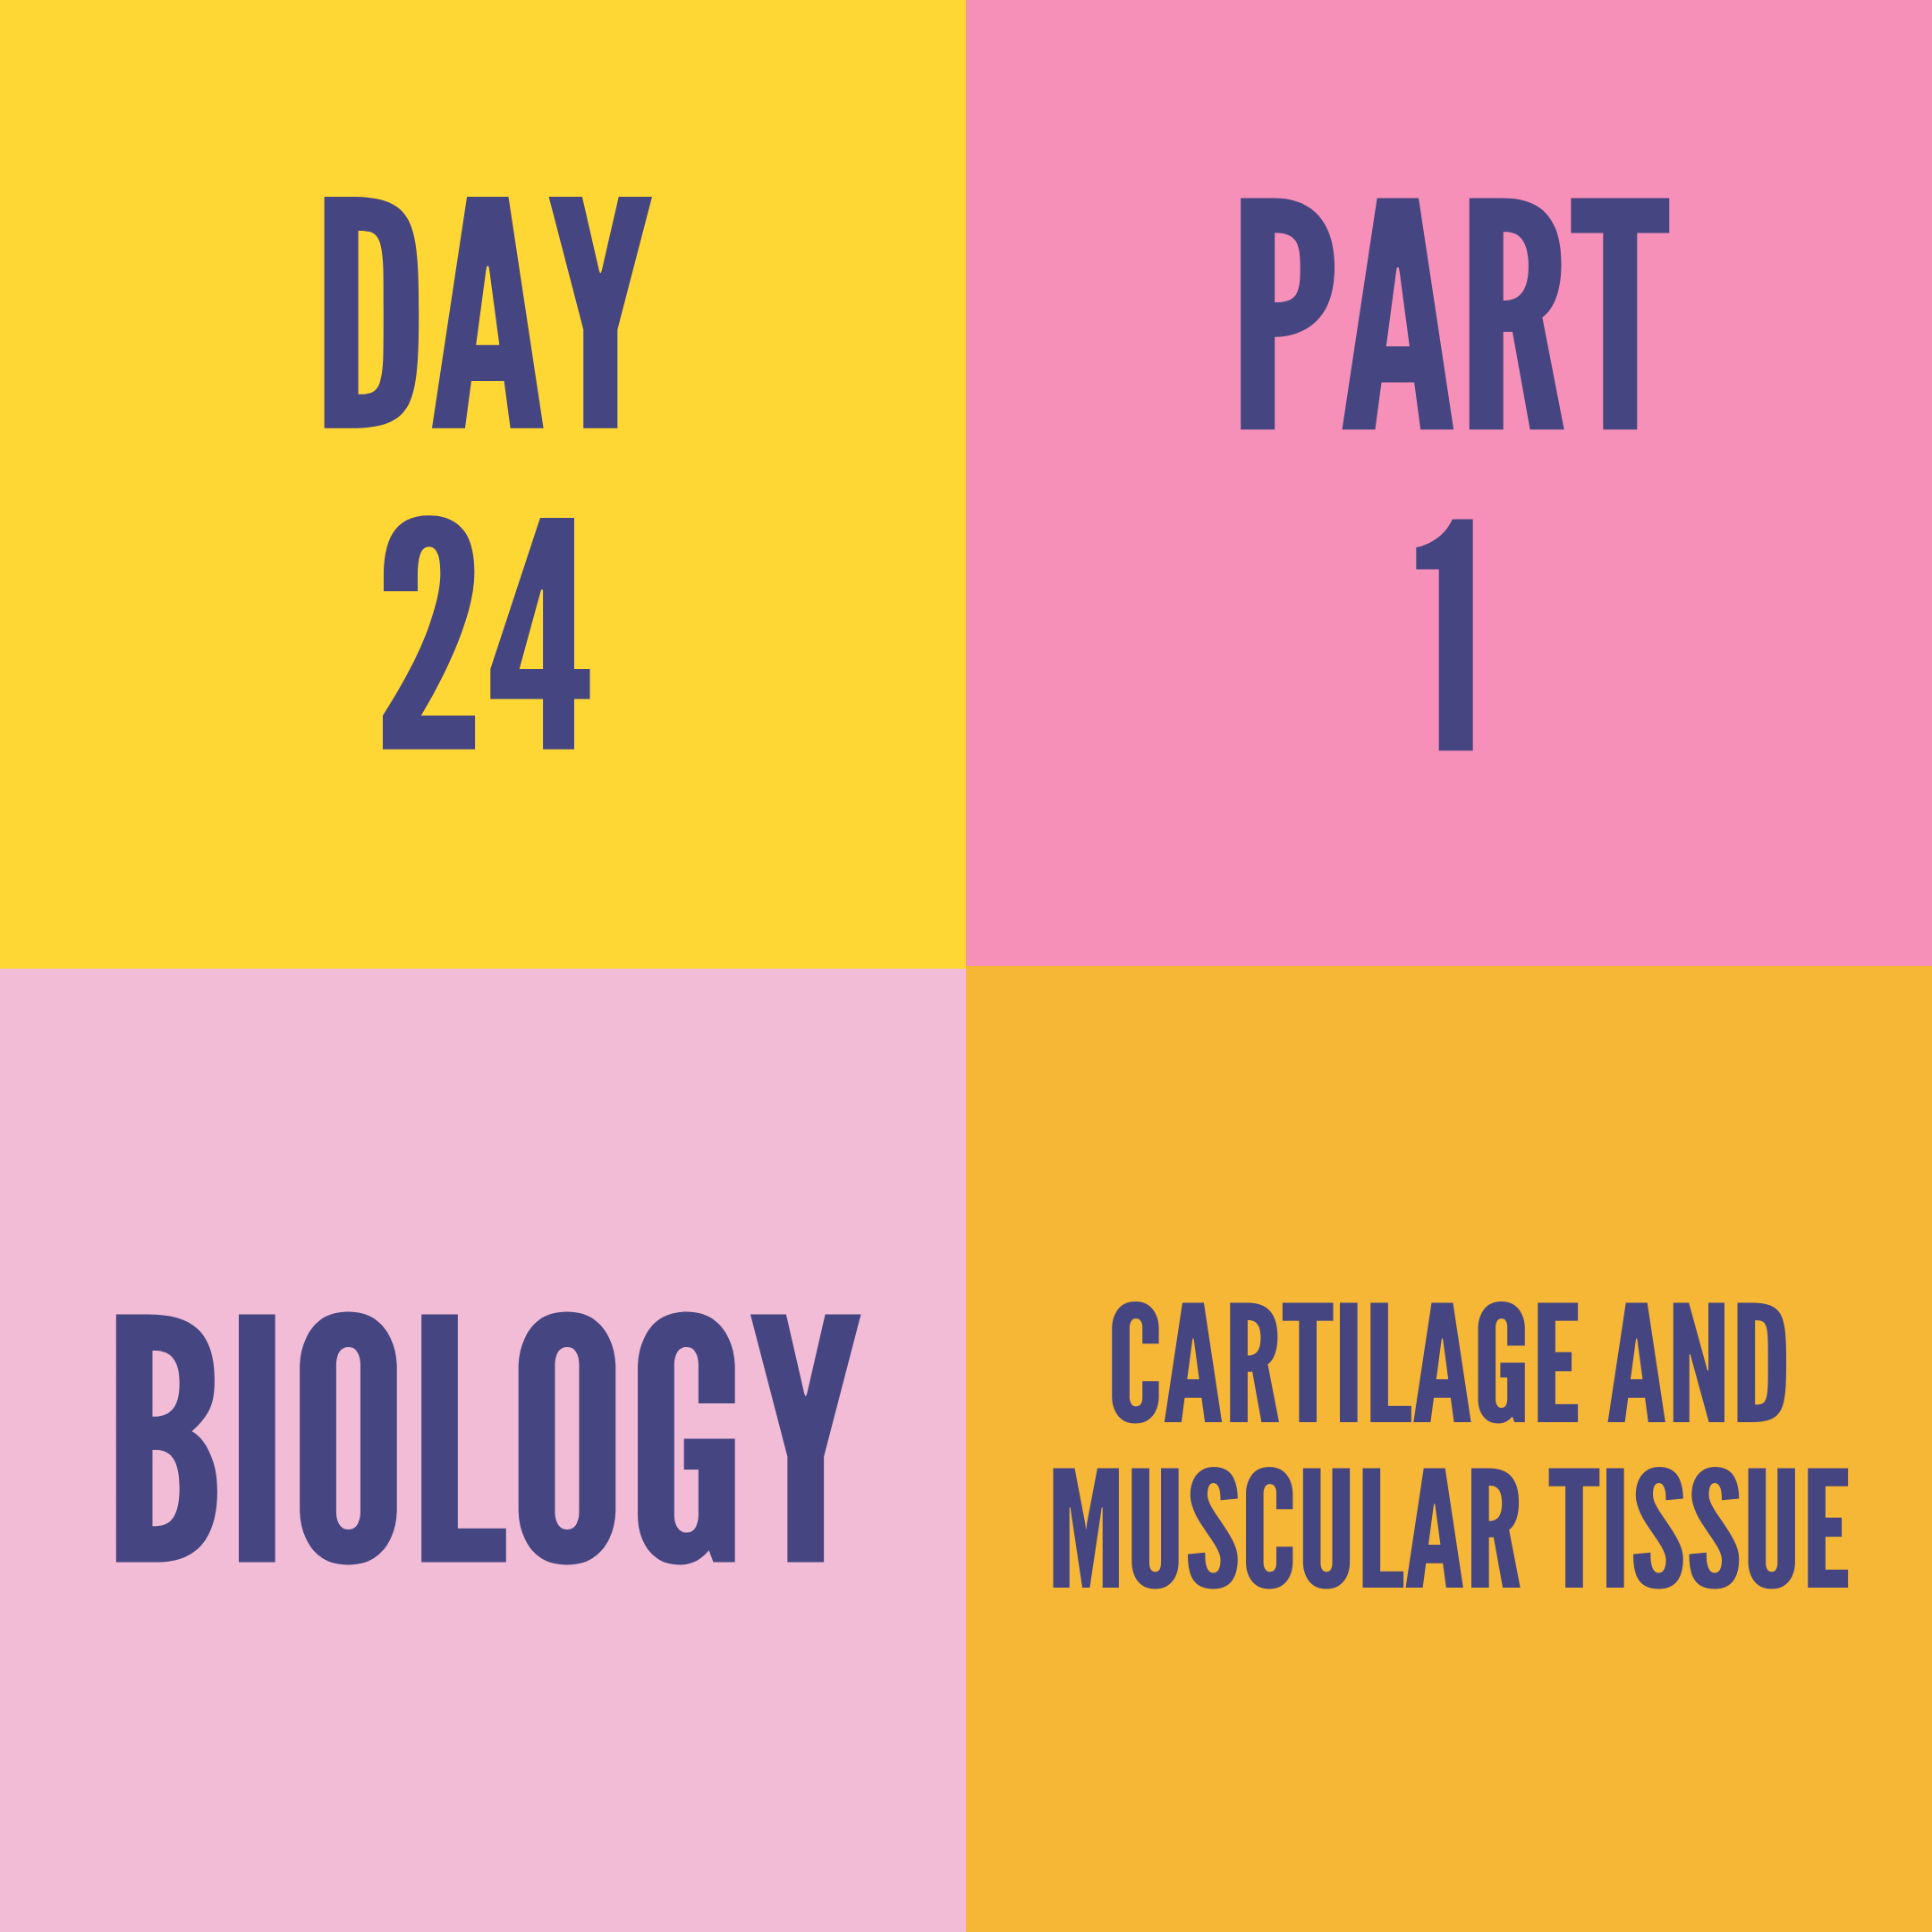 DAY-24 PART-1 CARTILAGE AND MUSCULAR TISSUE